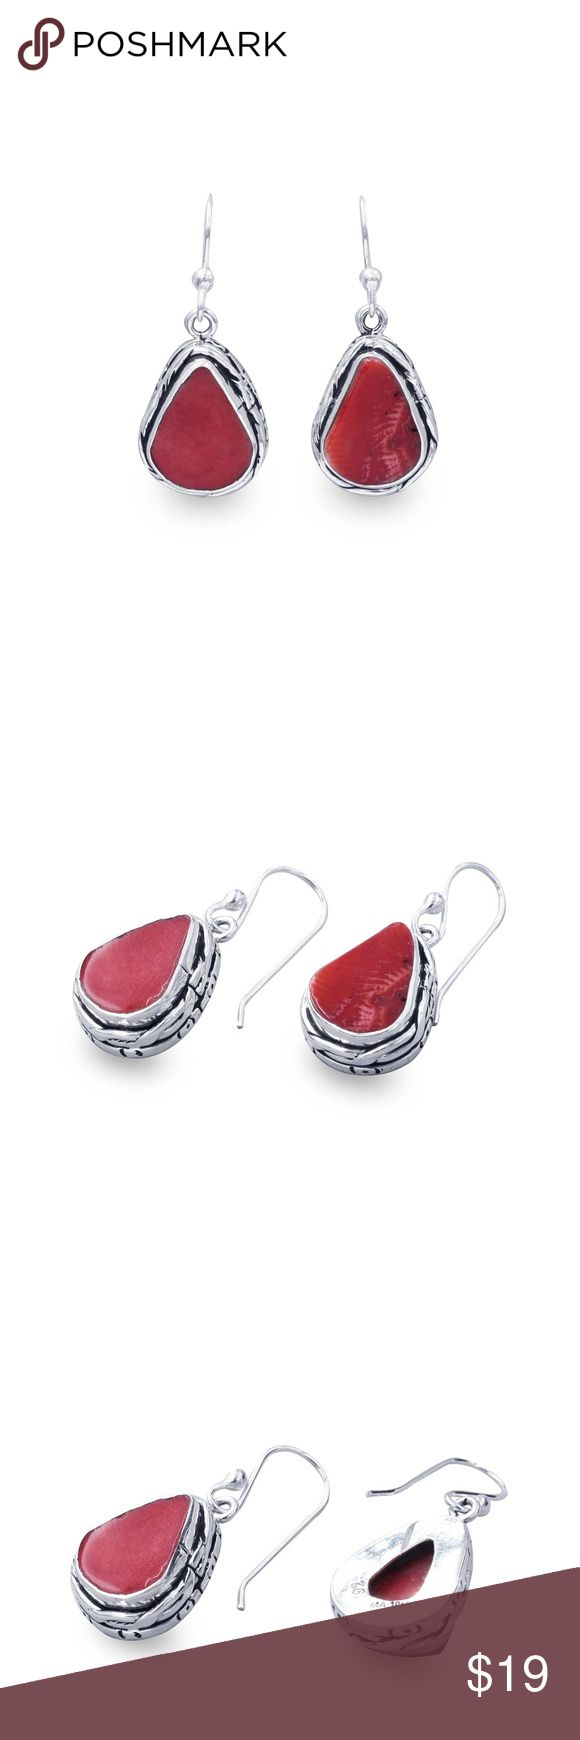 ‼️Clearance‼️925 RED CORAL DROP EARRINGS Hallmark: 925 Hang Length: 32 mm Width: 14 mm Authentic red coral Crafted in Taxco Mexico. Sterling silver is an alloy of silver containing 92.5% by mass of silver and 7.5% by mass of other metals, usually copper or zinc. The sterling silver standard has a minimum millesimal fineness of 925. Jewelry Earrings